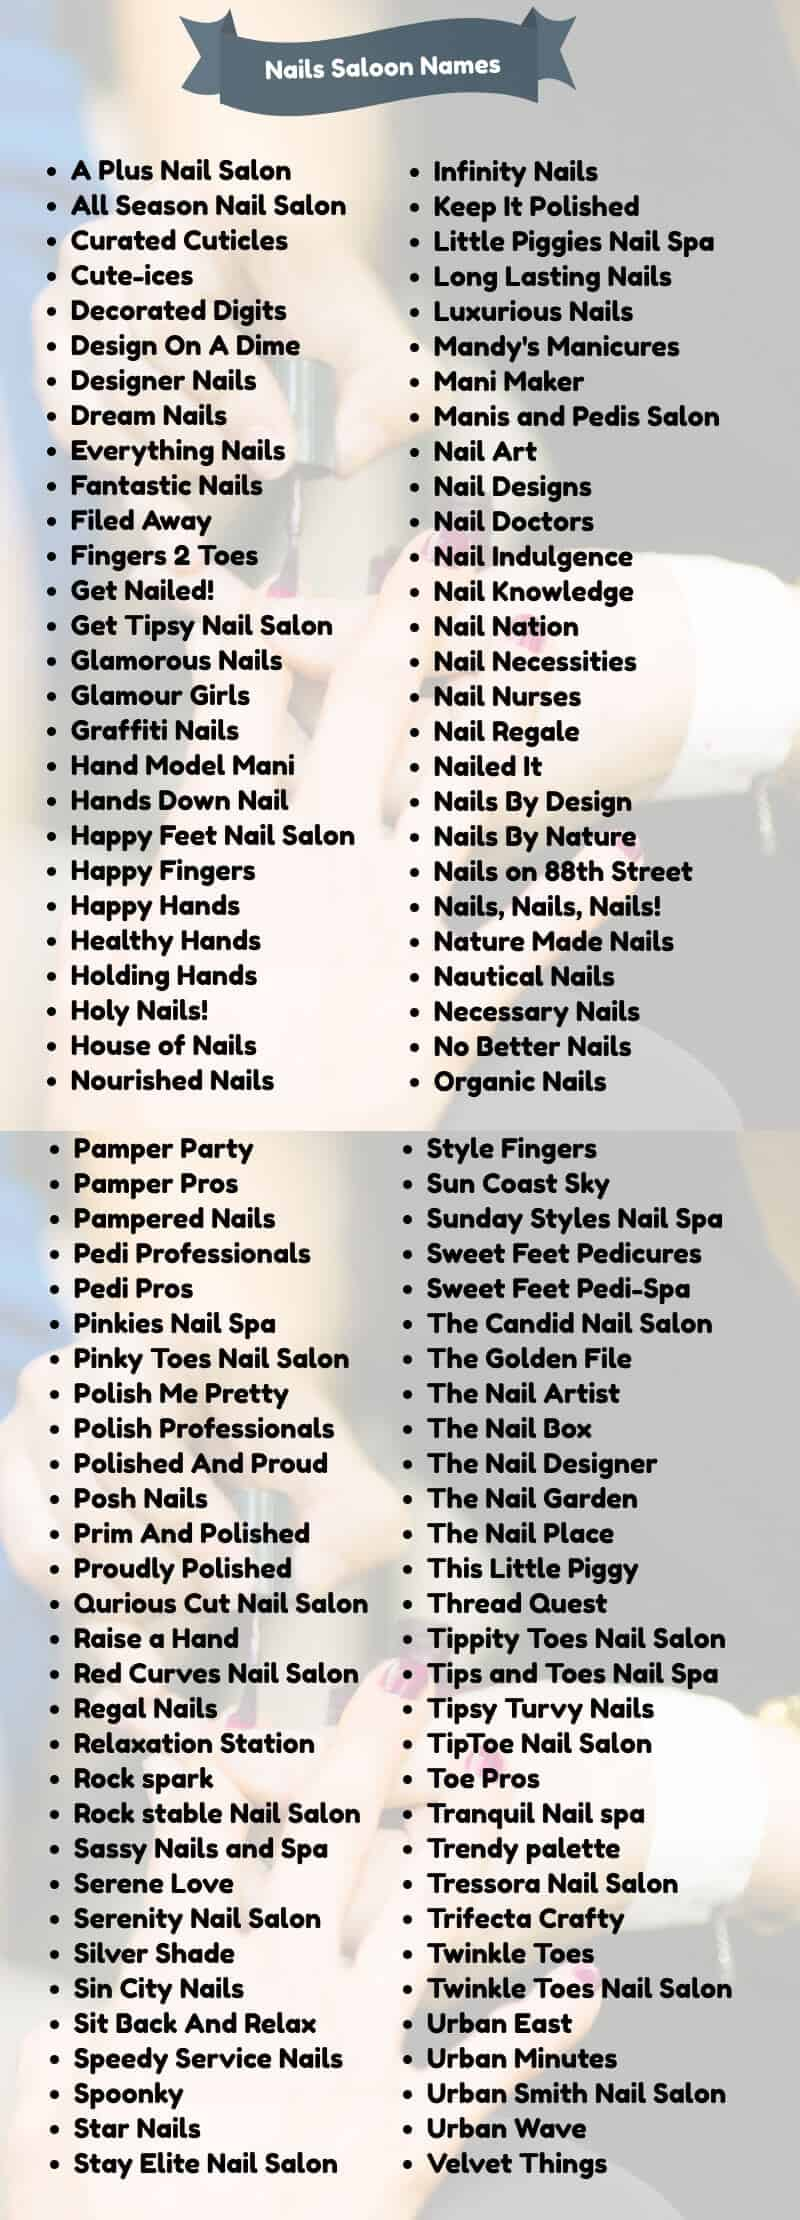 18+ Classy Nail Salon Names for Your Business